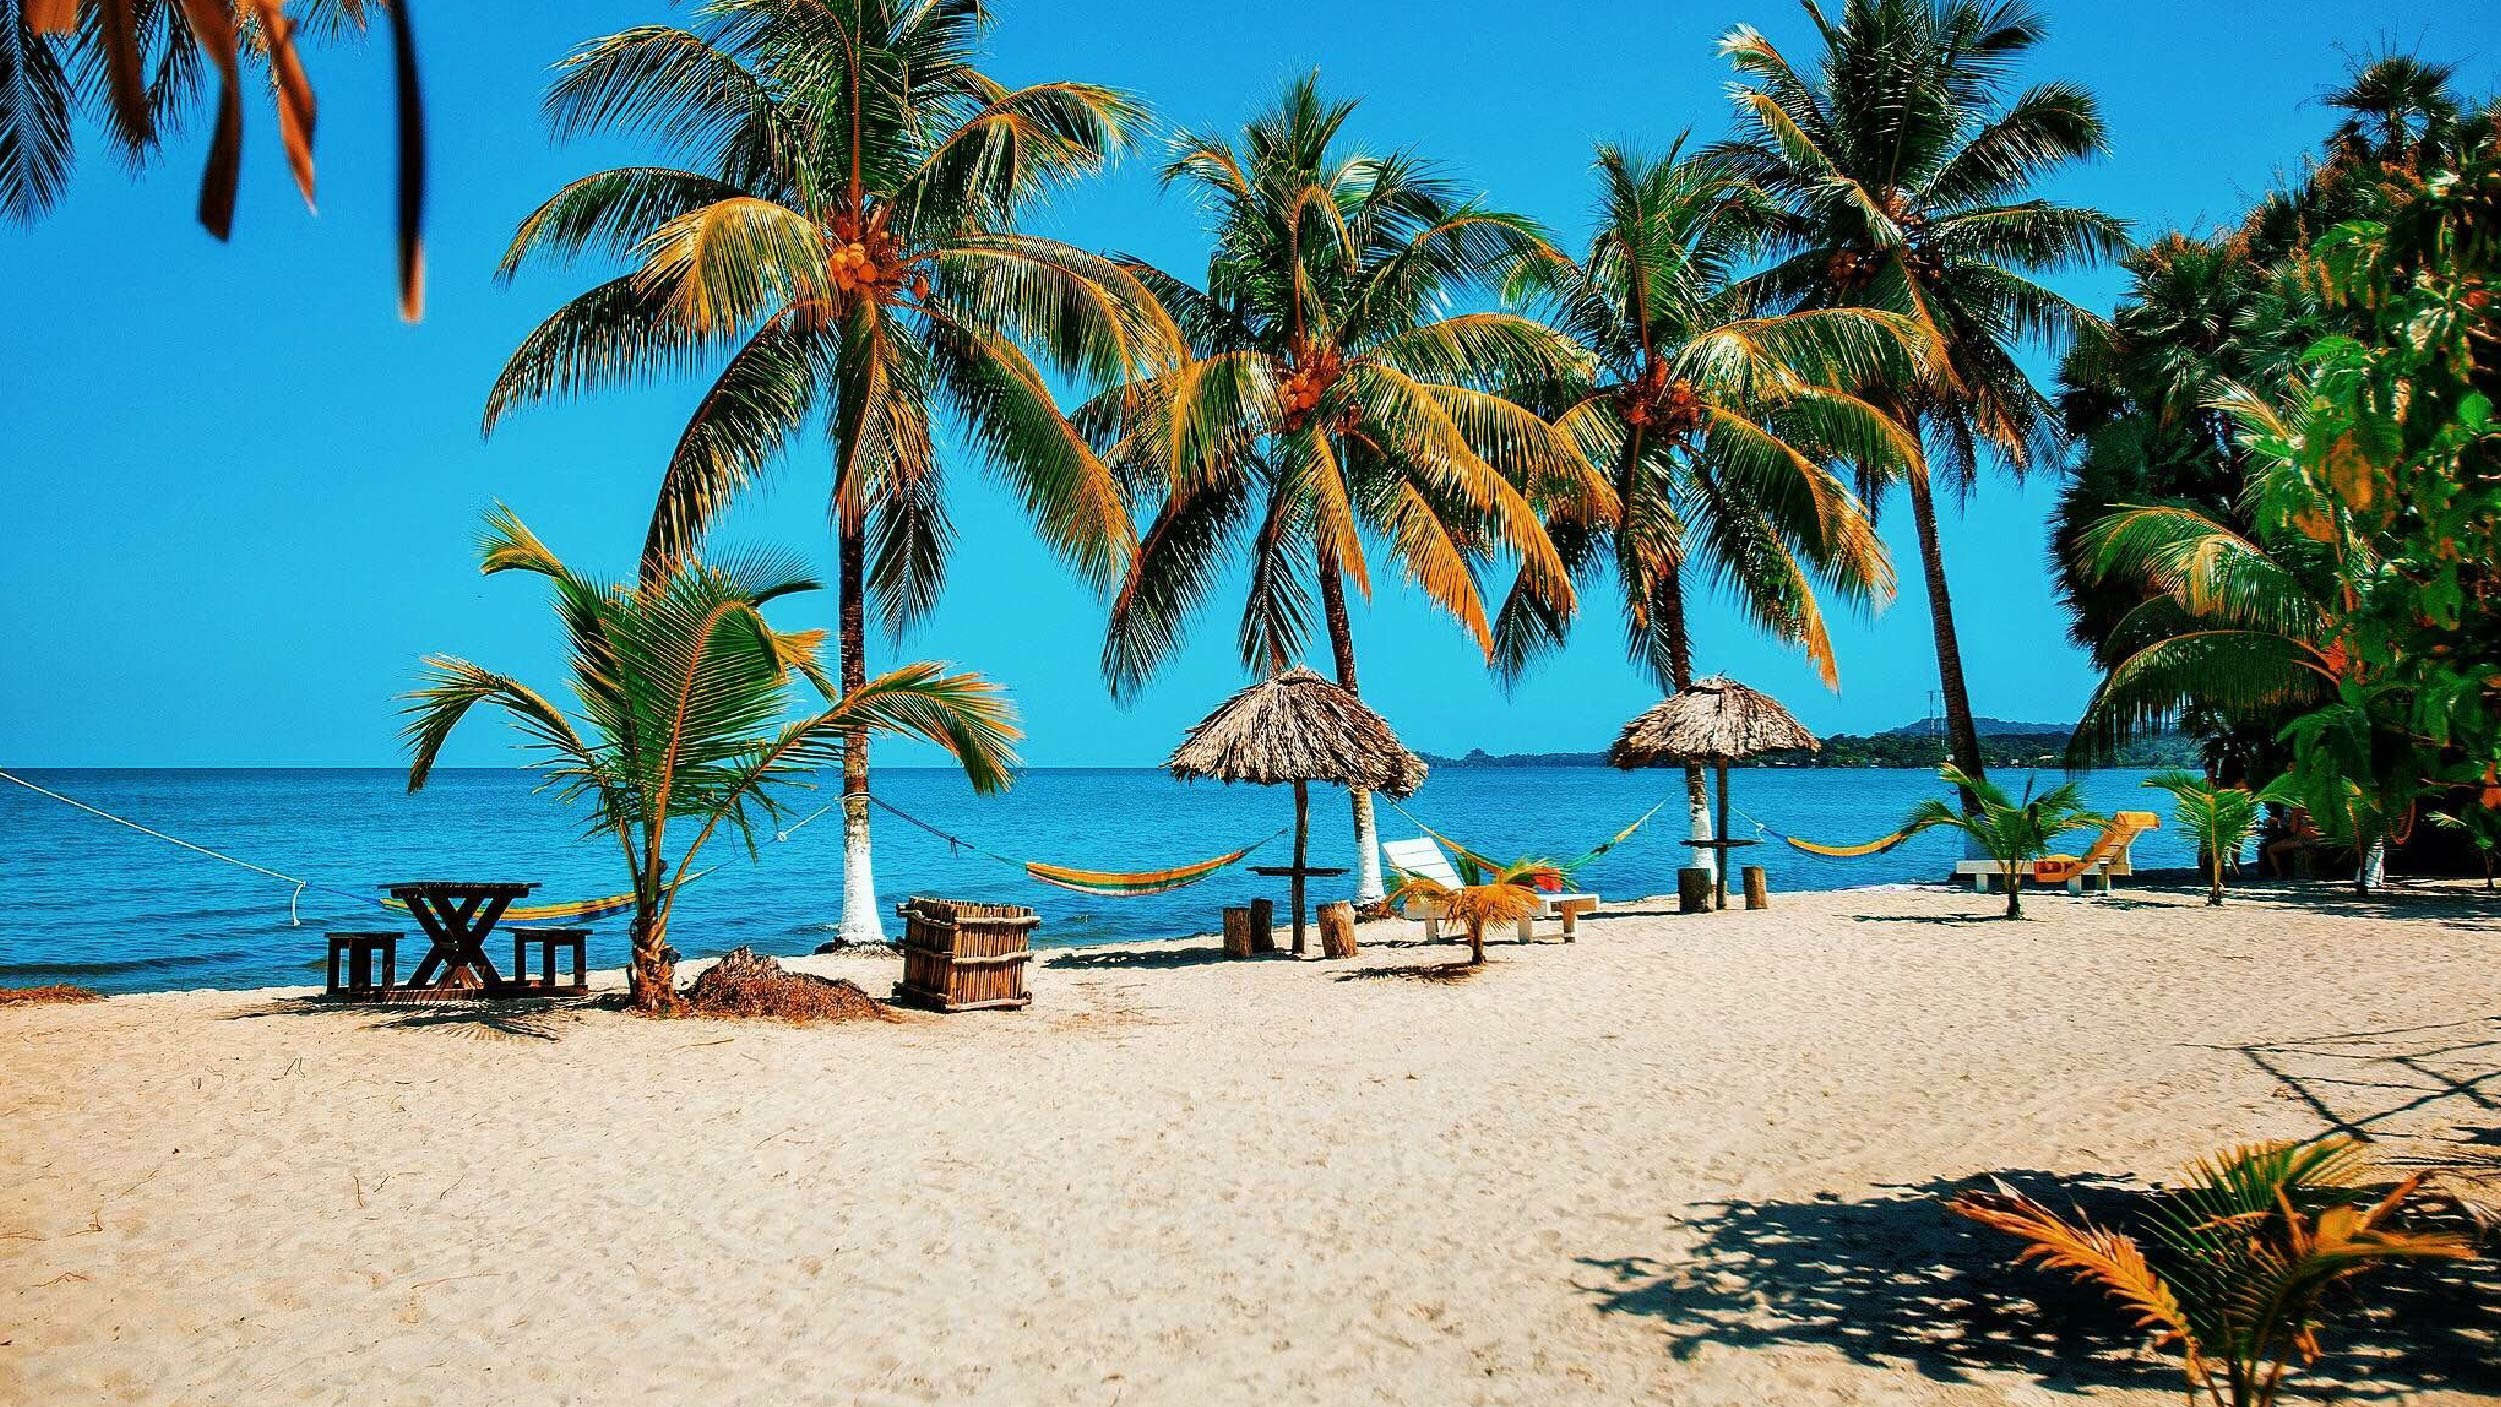 Guatemala S Beaches And Other Tourist Sites